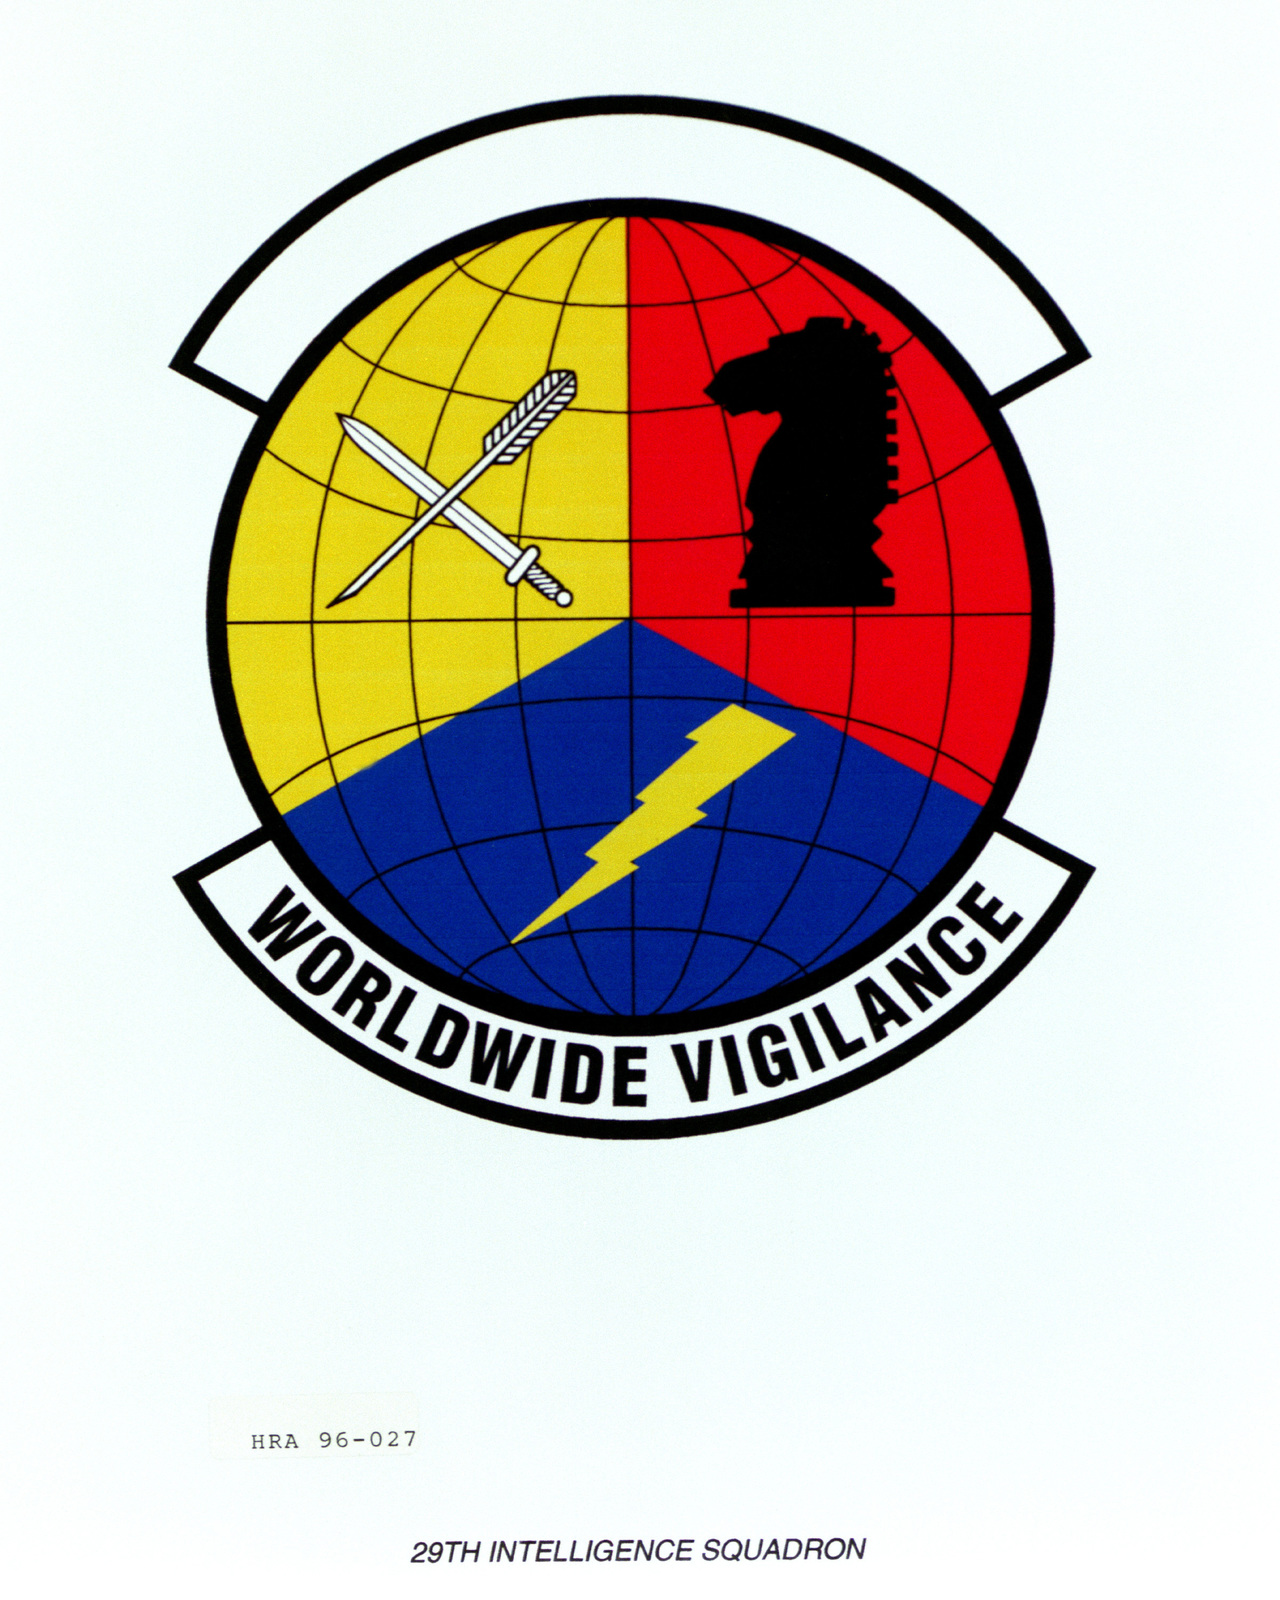 Approved insignia for the 29th Intelligence Squadron Exact Date Shot Unknown